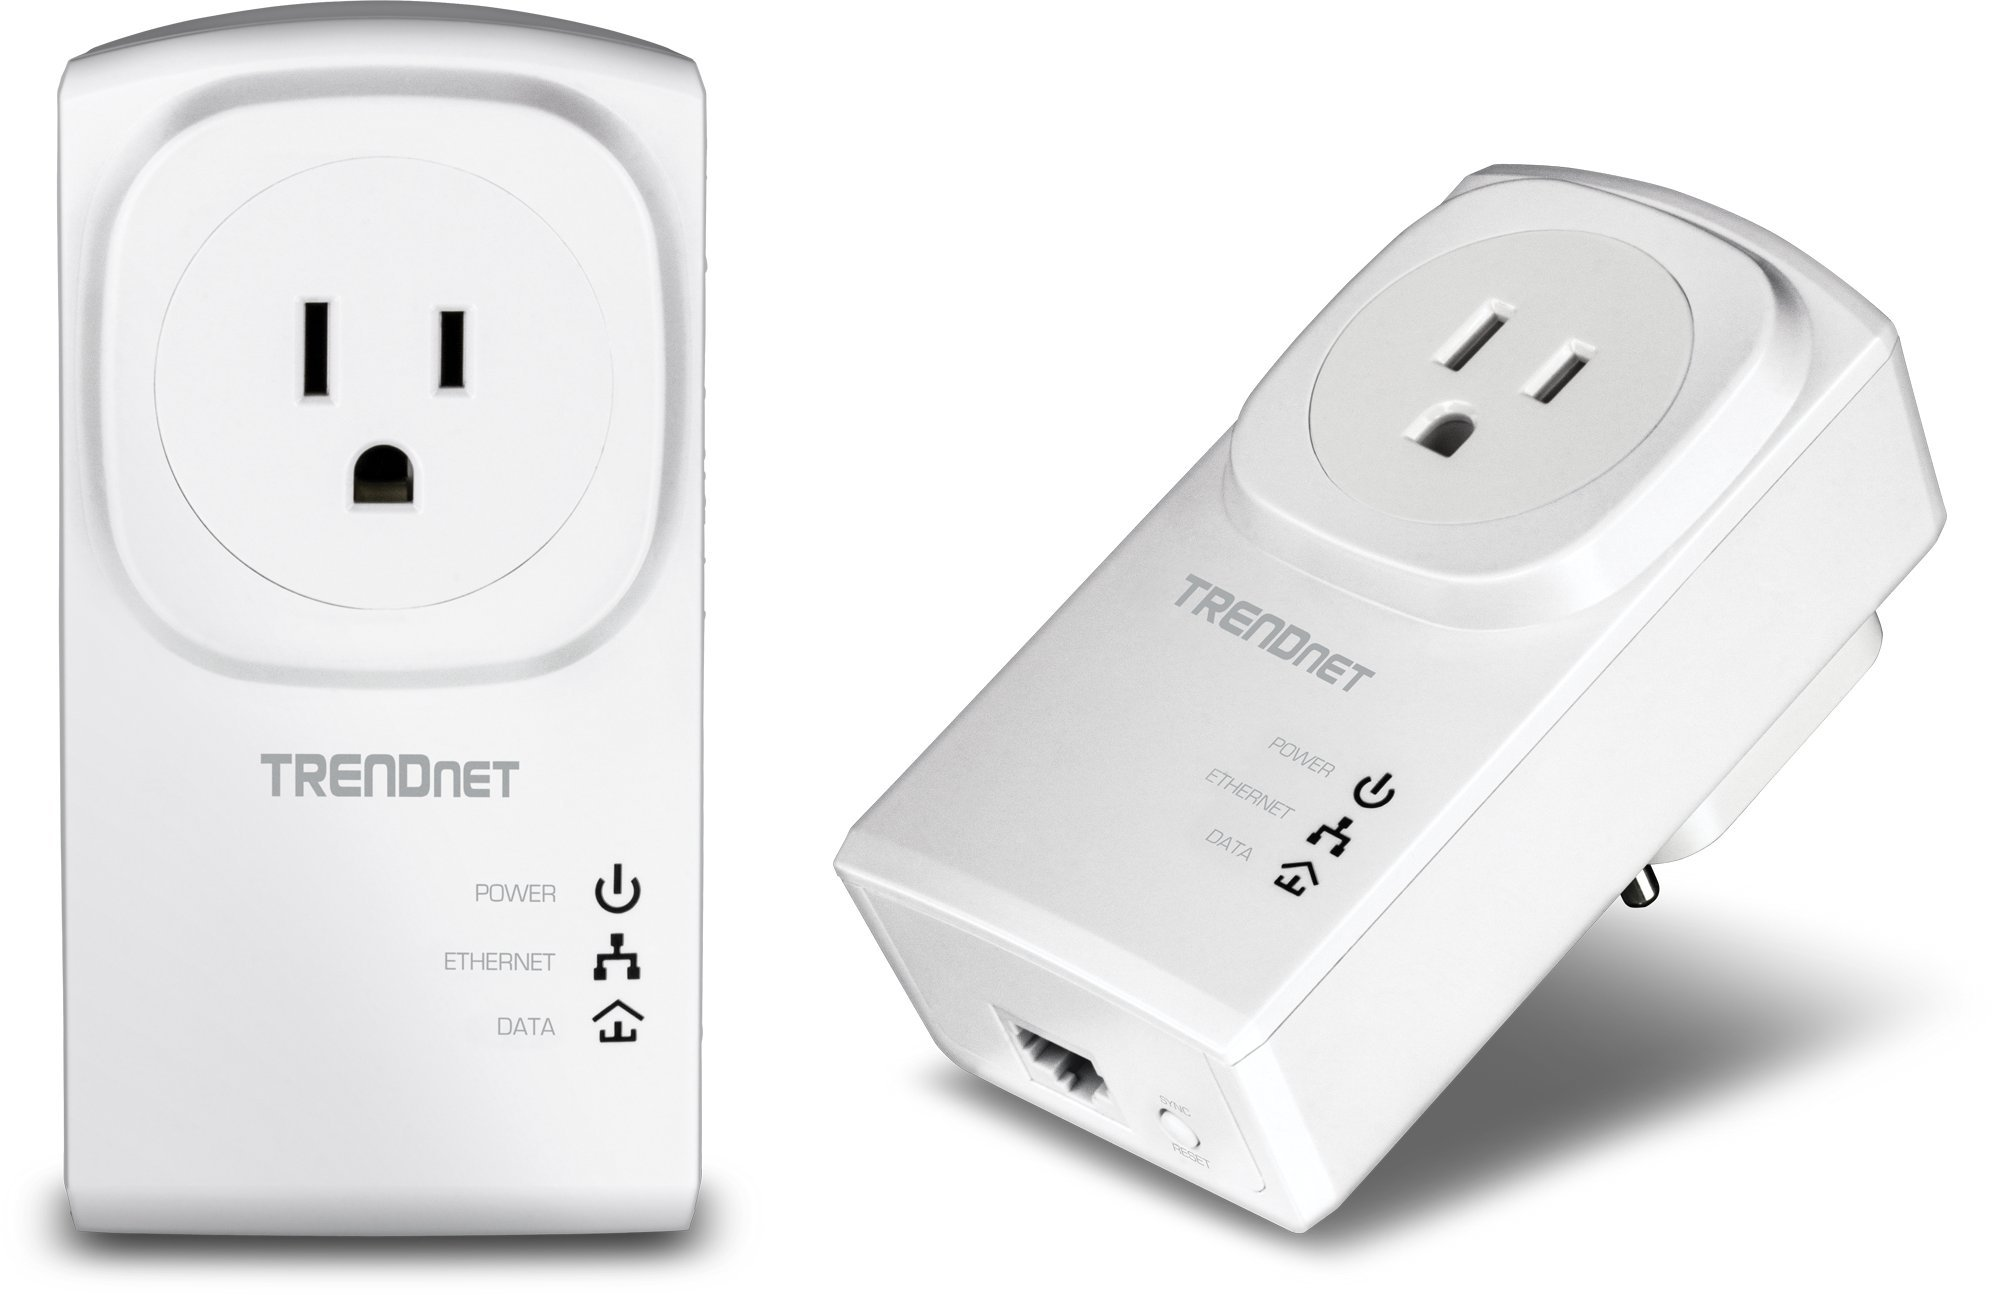 TRENDnet Powerline 500 AV Nano Adapter Kit with Built-In Outlet, With Power Outlet Pass-Through, Includes 2 x TPL-407E Adapters, TPL-407E2K by TRENDnet